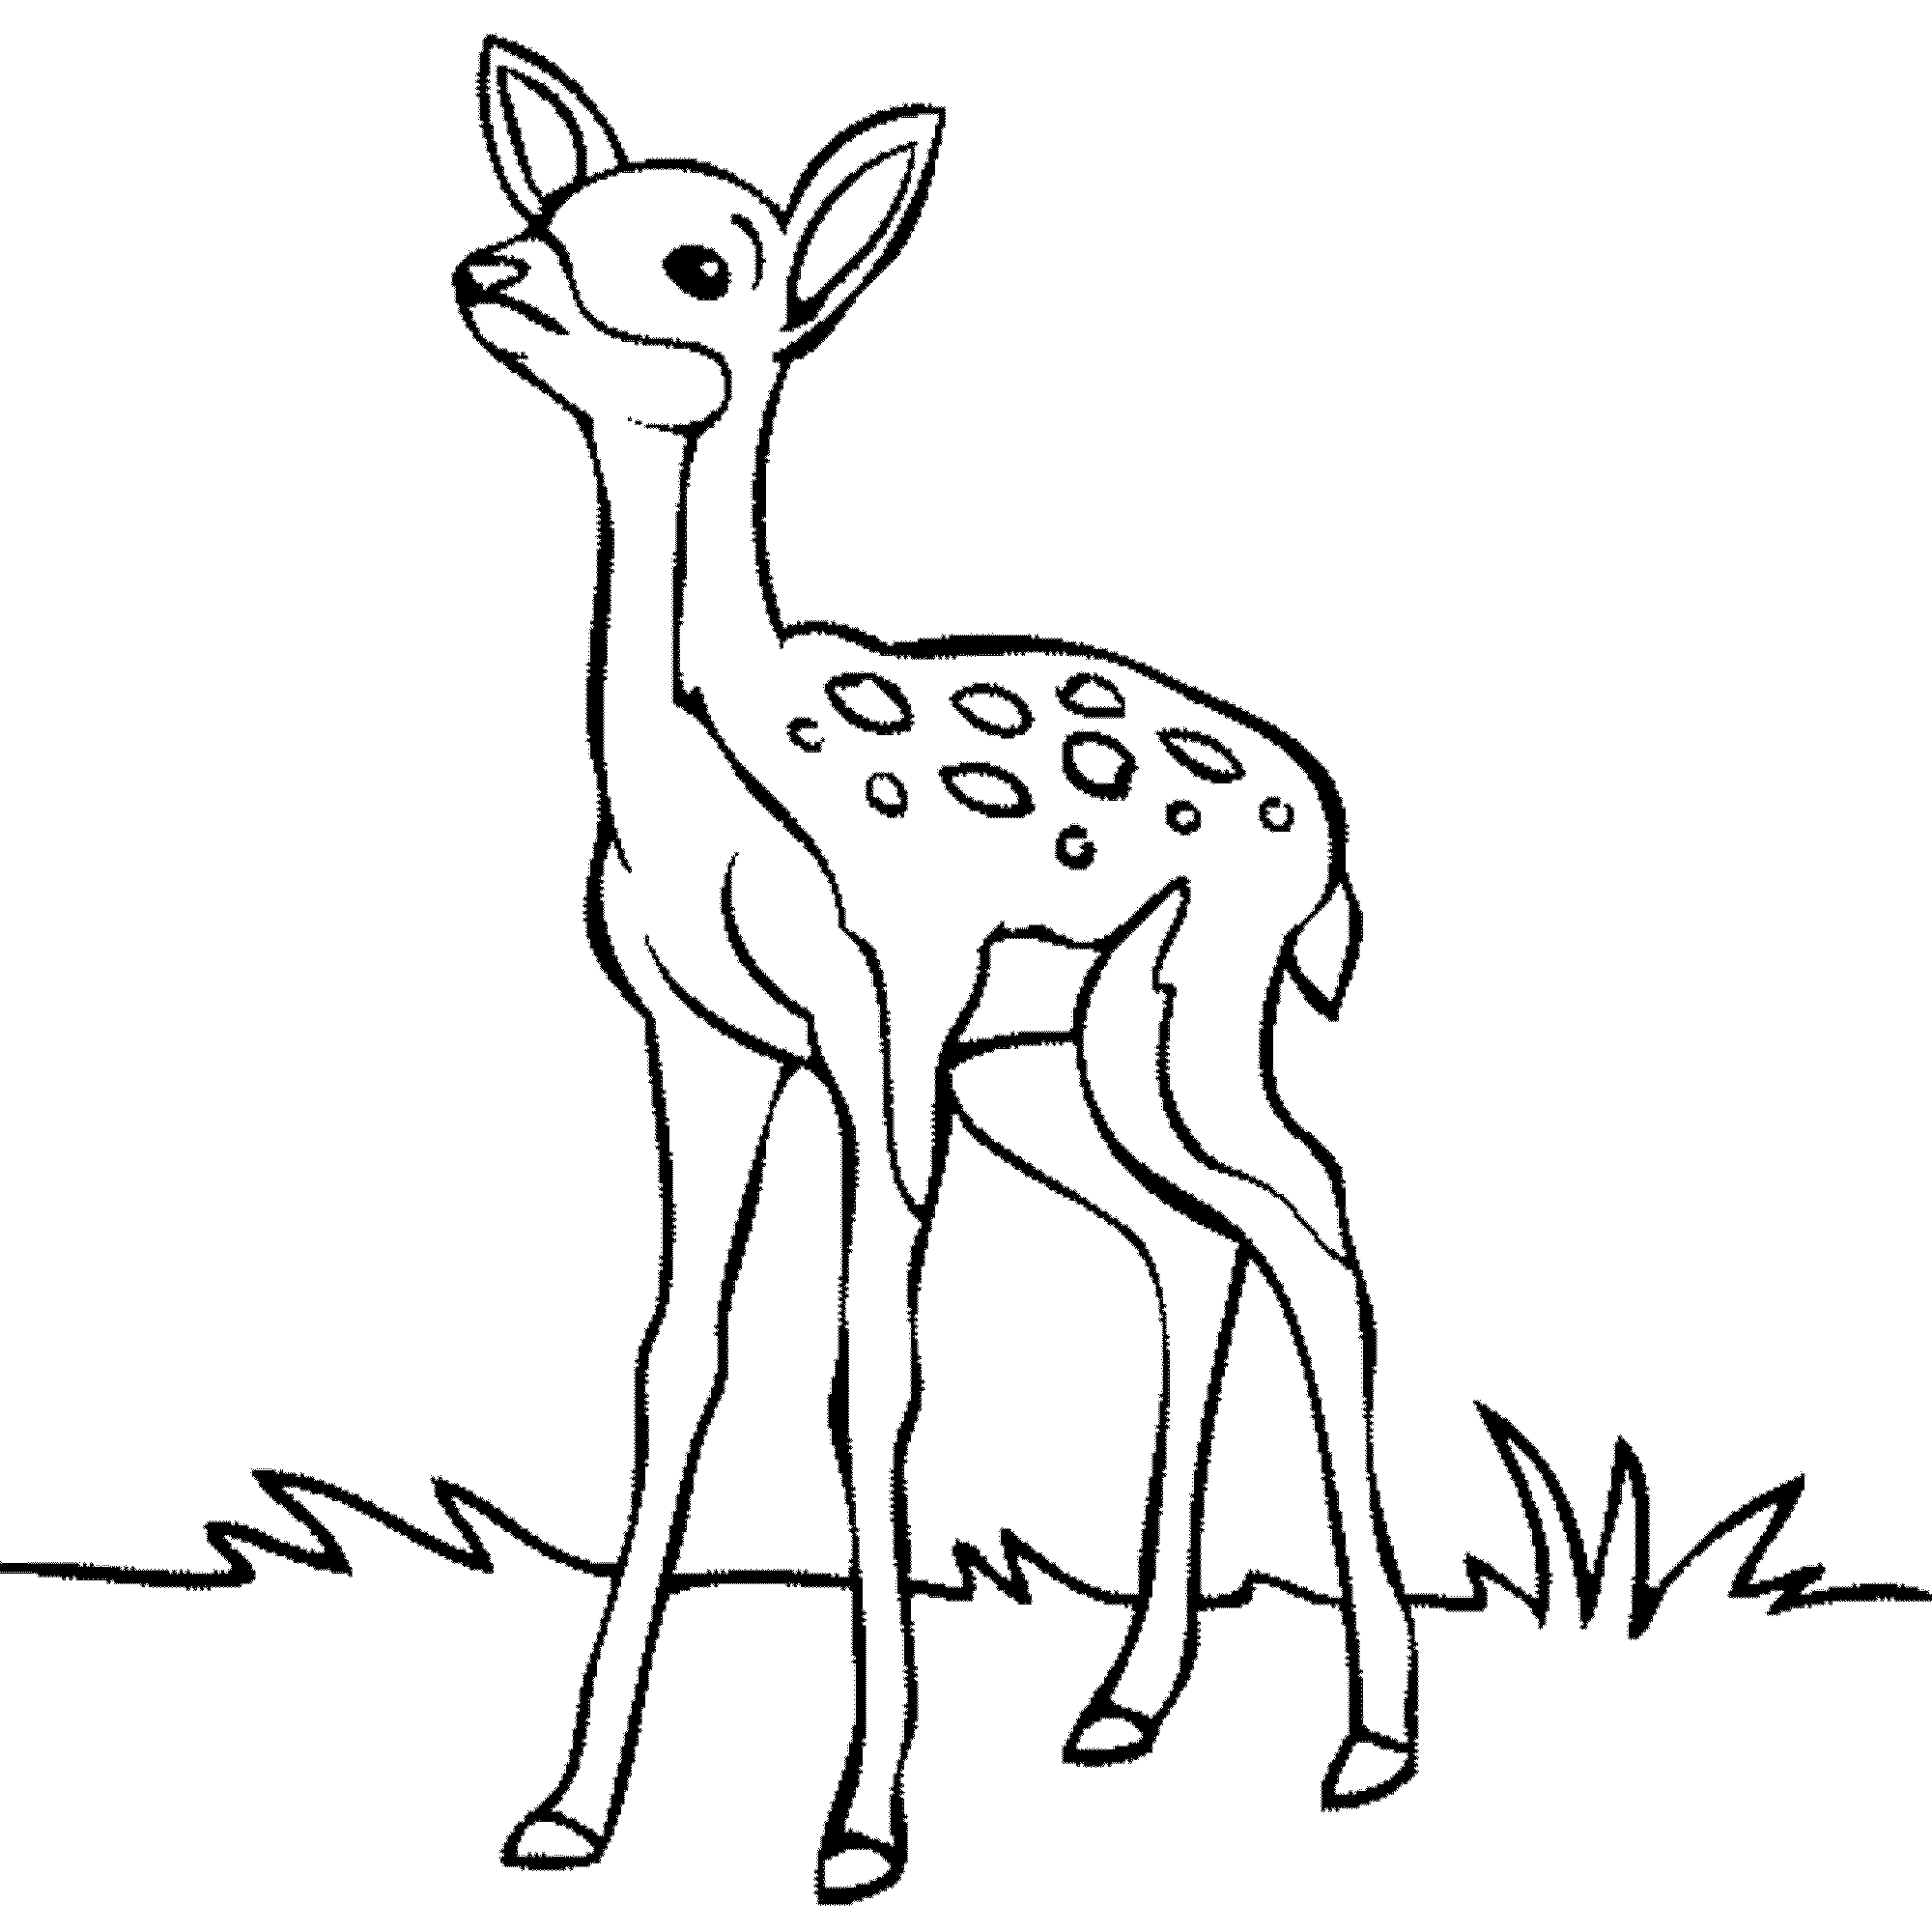 Deer In Forest Drawing at GetDrawings.com | Free for personal use ...